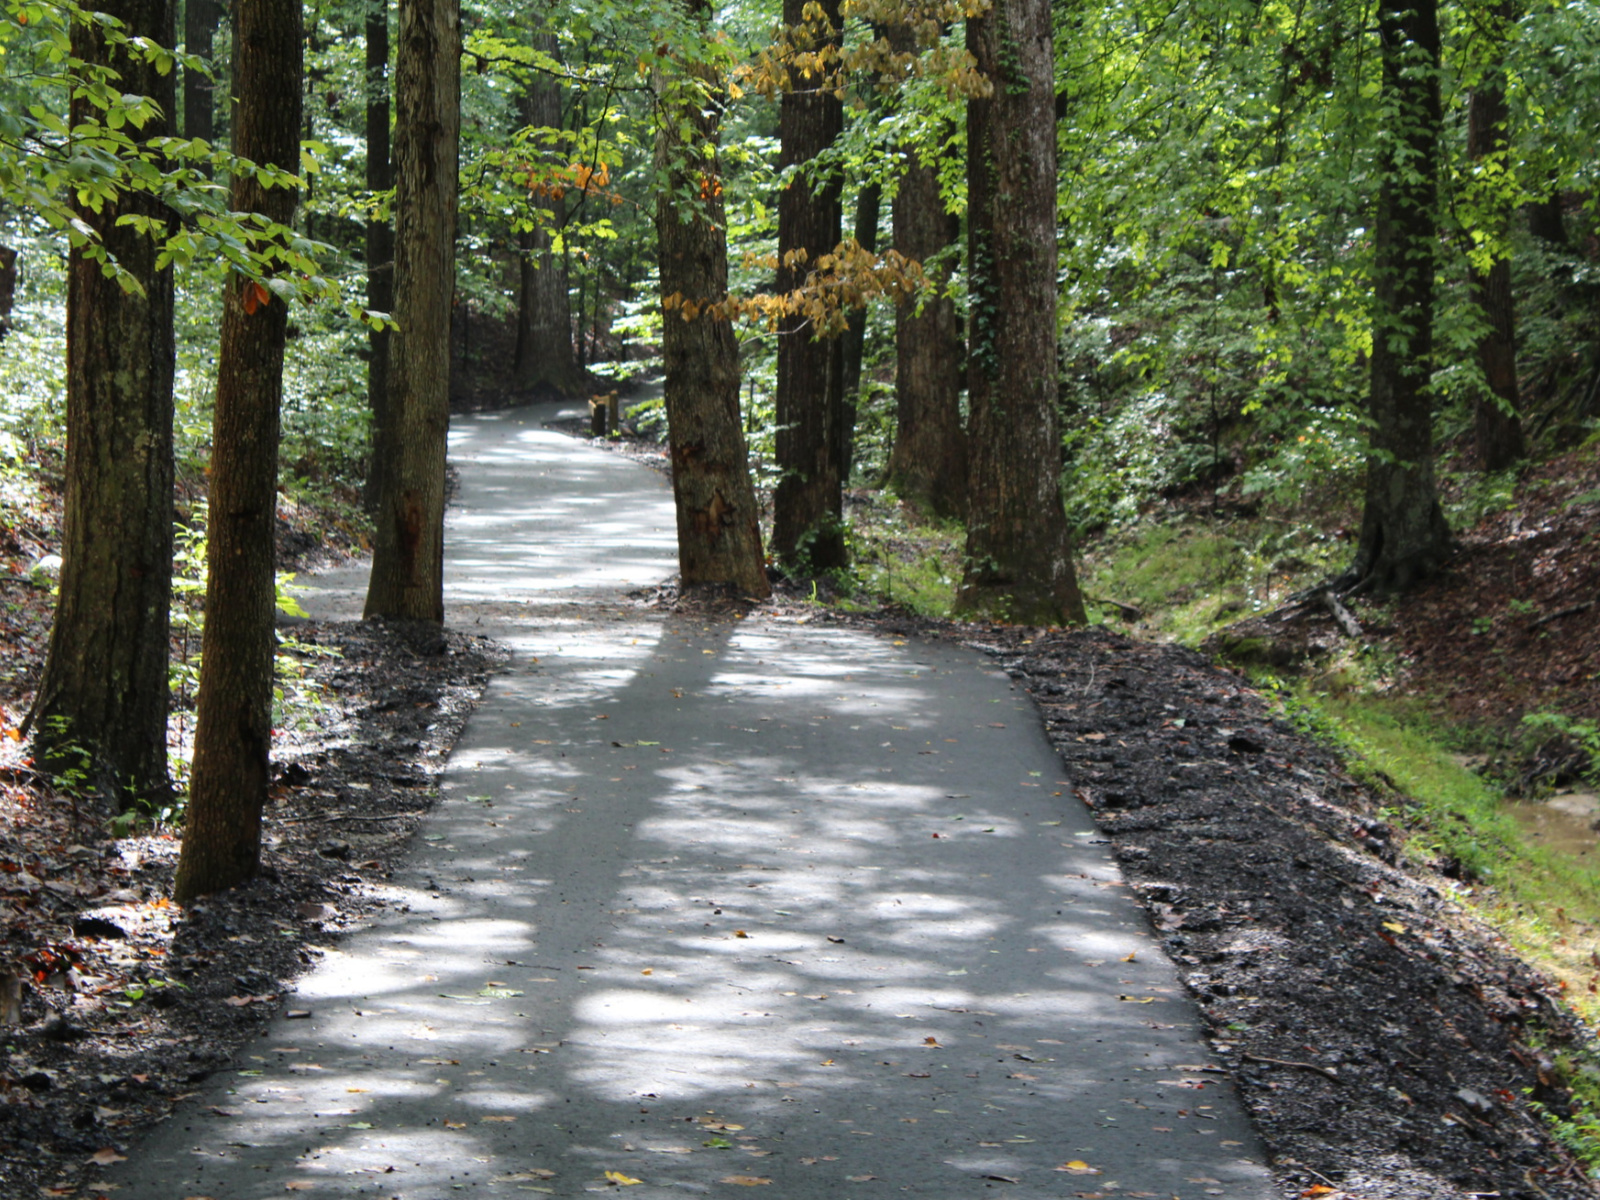 Rich Park in Mocksville Temporarily closed